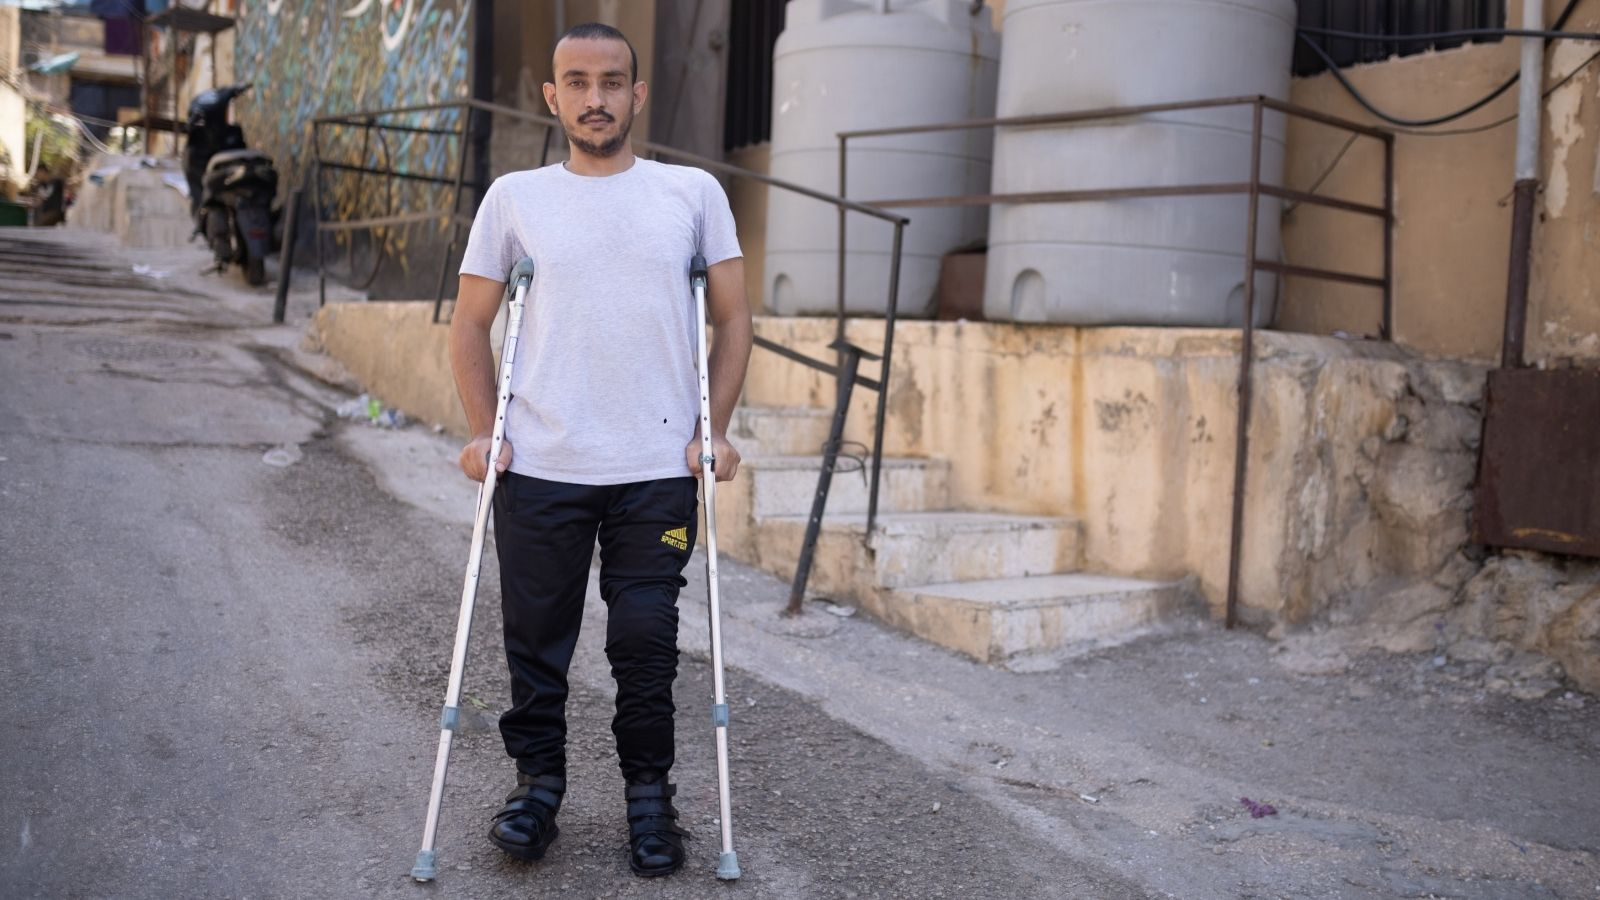 c_Tom-Nicholson_HI__A_man_stands_with_crutches_and_special_boots_in_an_alleyway_in_Lebanon.jpg